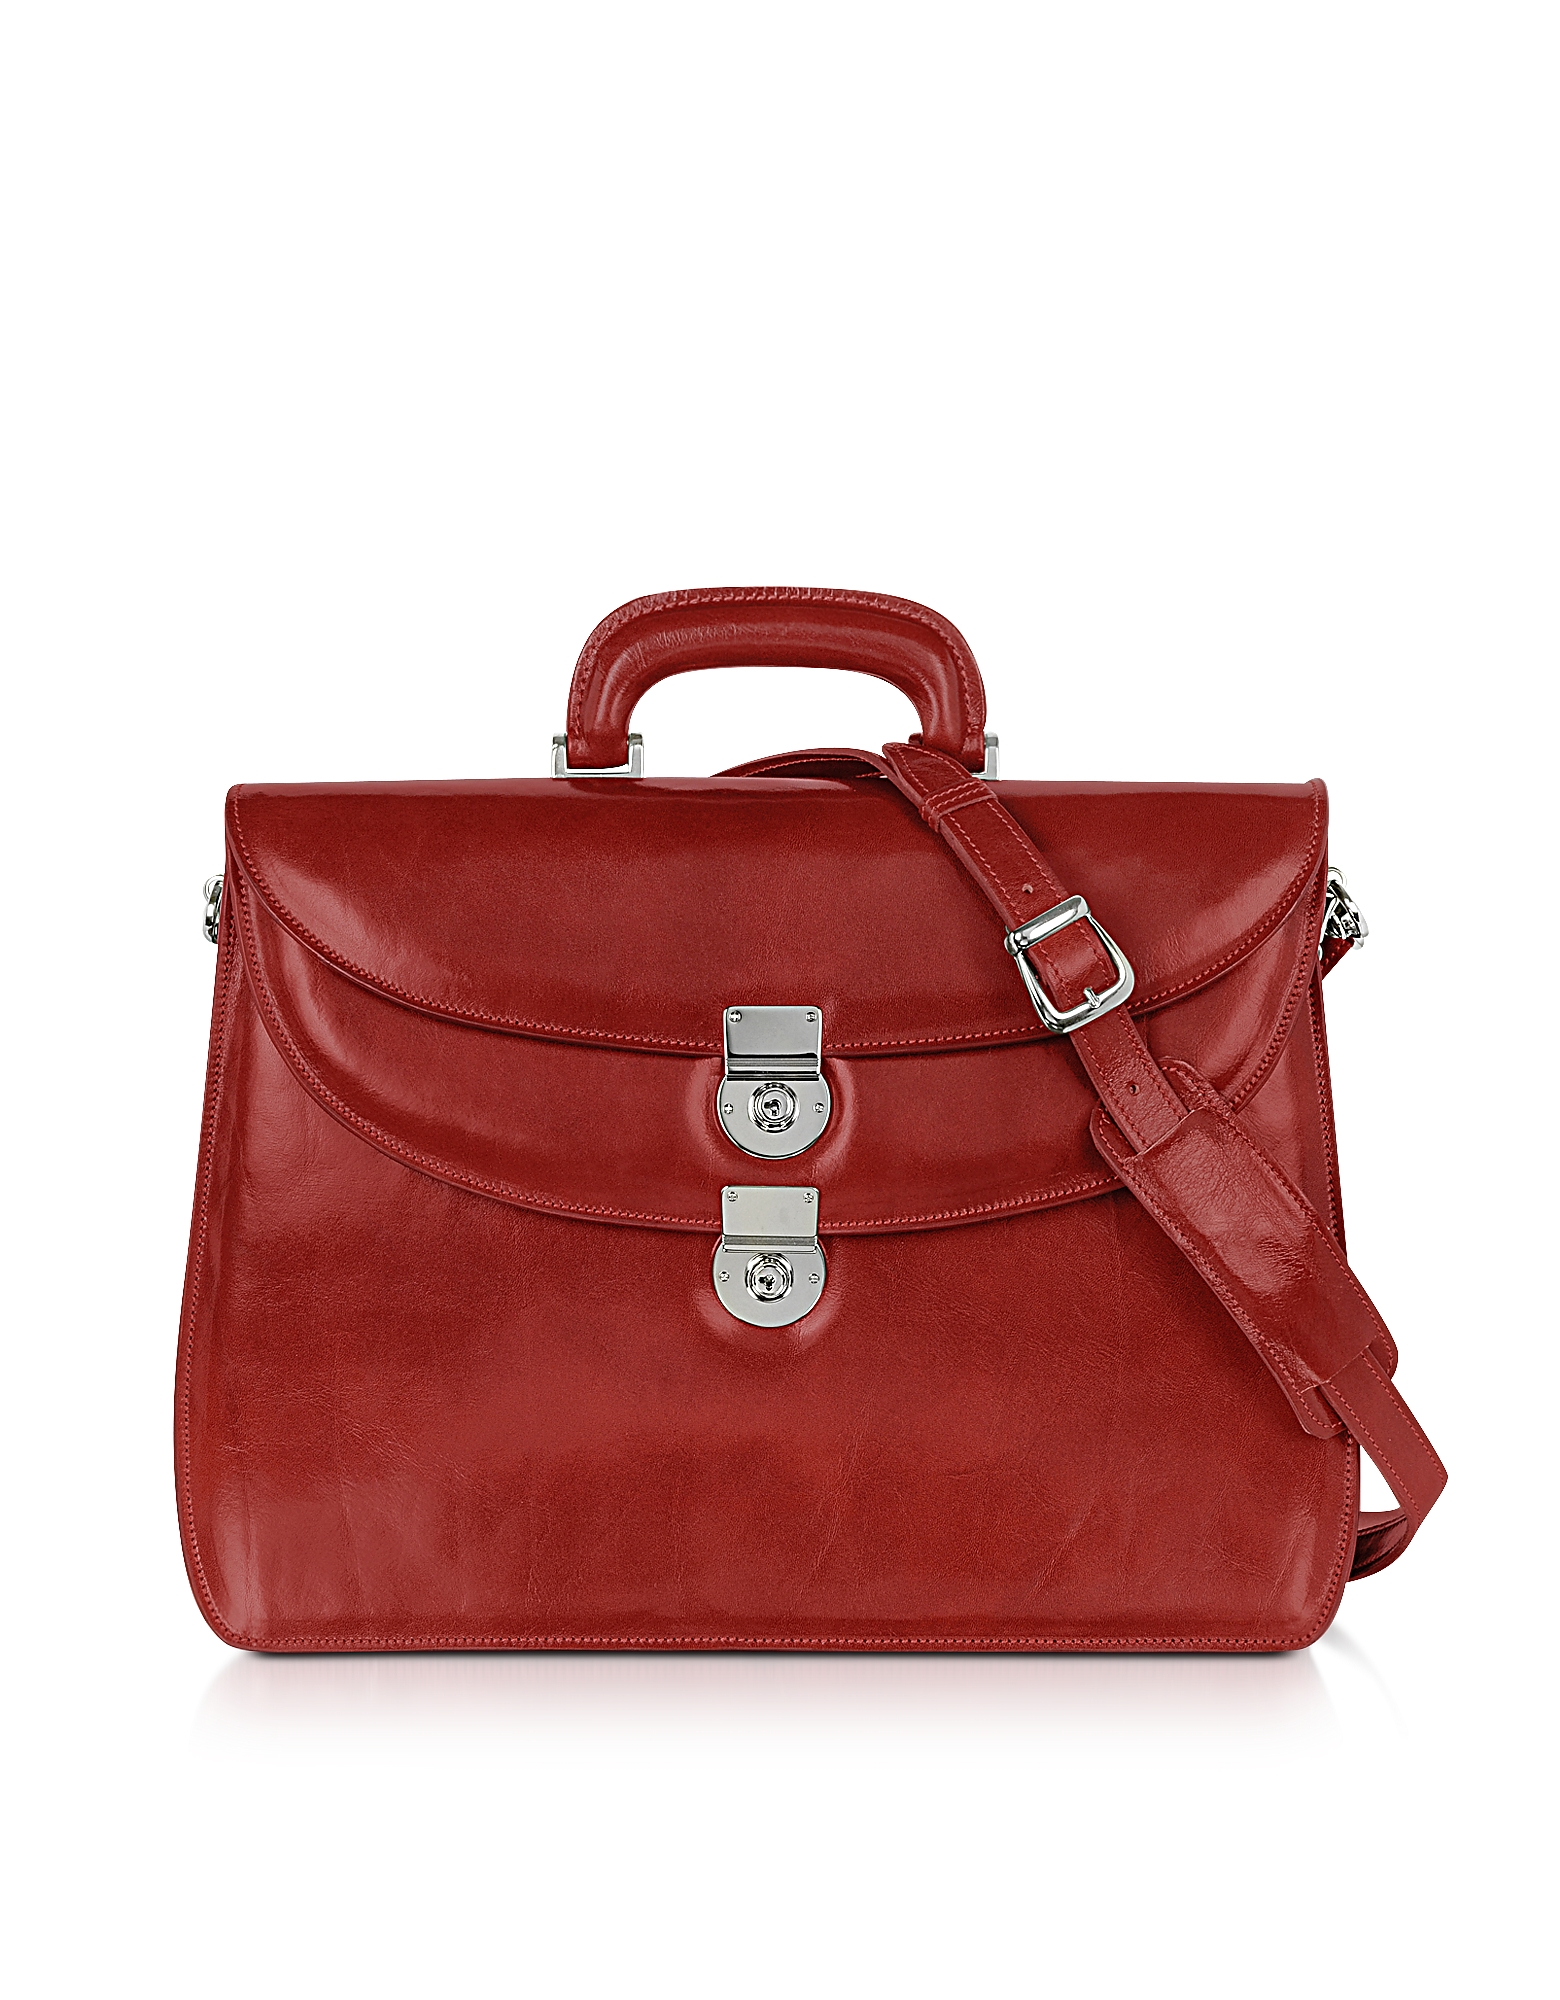 L.A.P.A. Briefcases, Women's Red Leather Briefcase